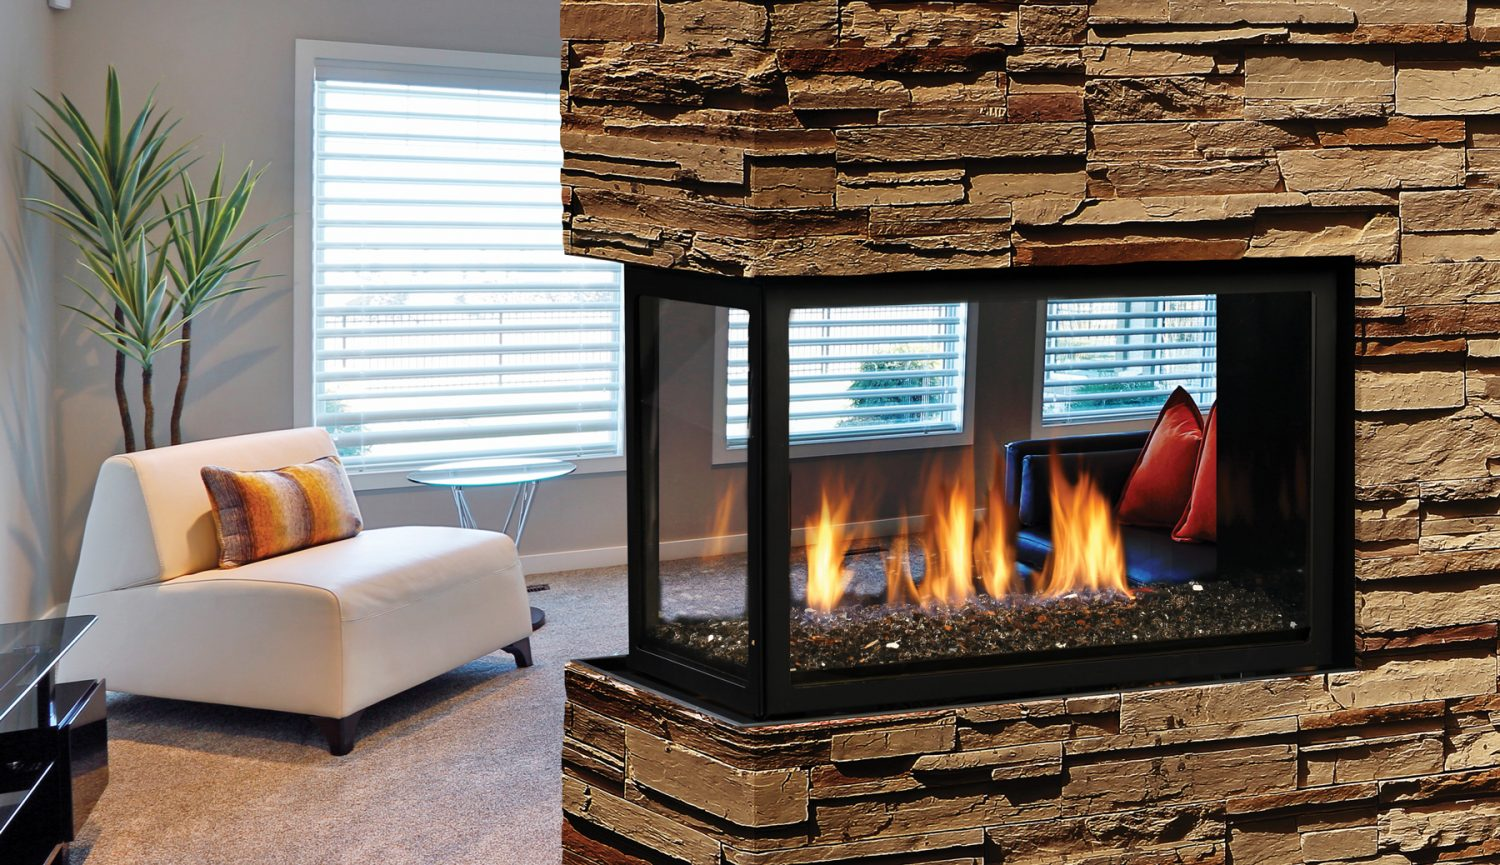 Kingsman Mcvp42 Direct Vent Fireplace Toronto Best Price